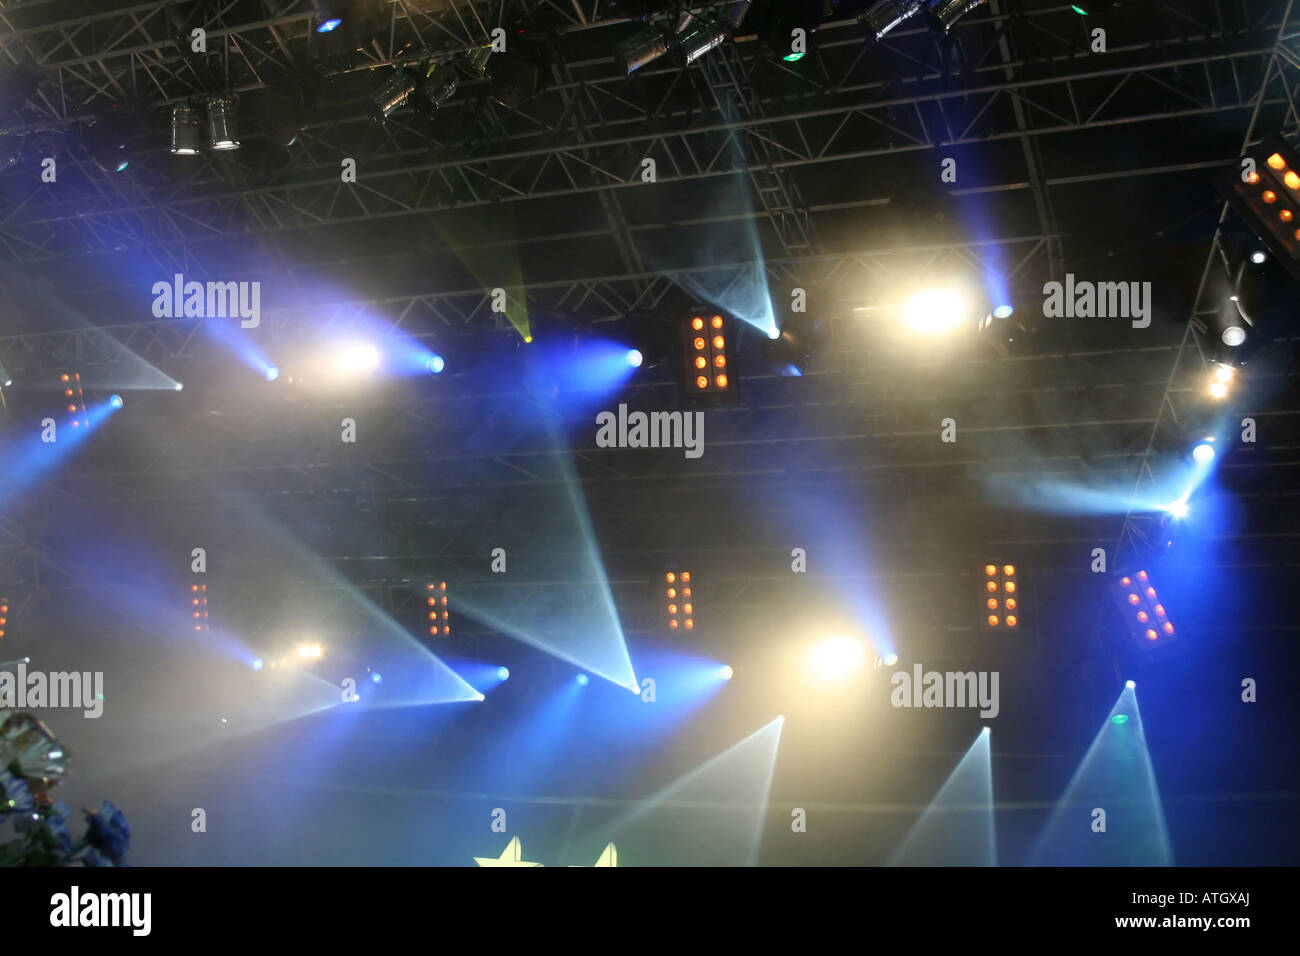 Multicolored Stage lights On the show - Stock Image